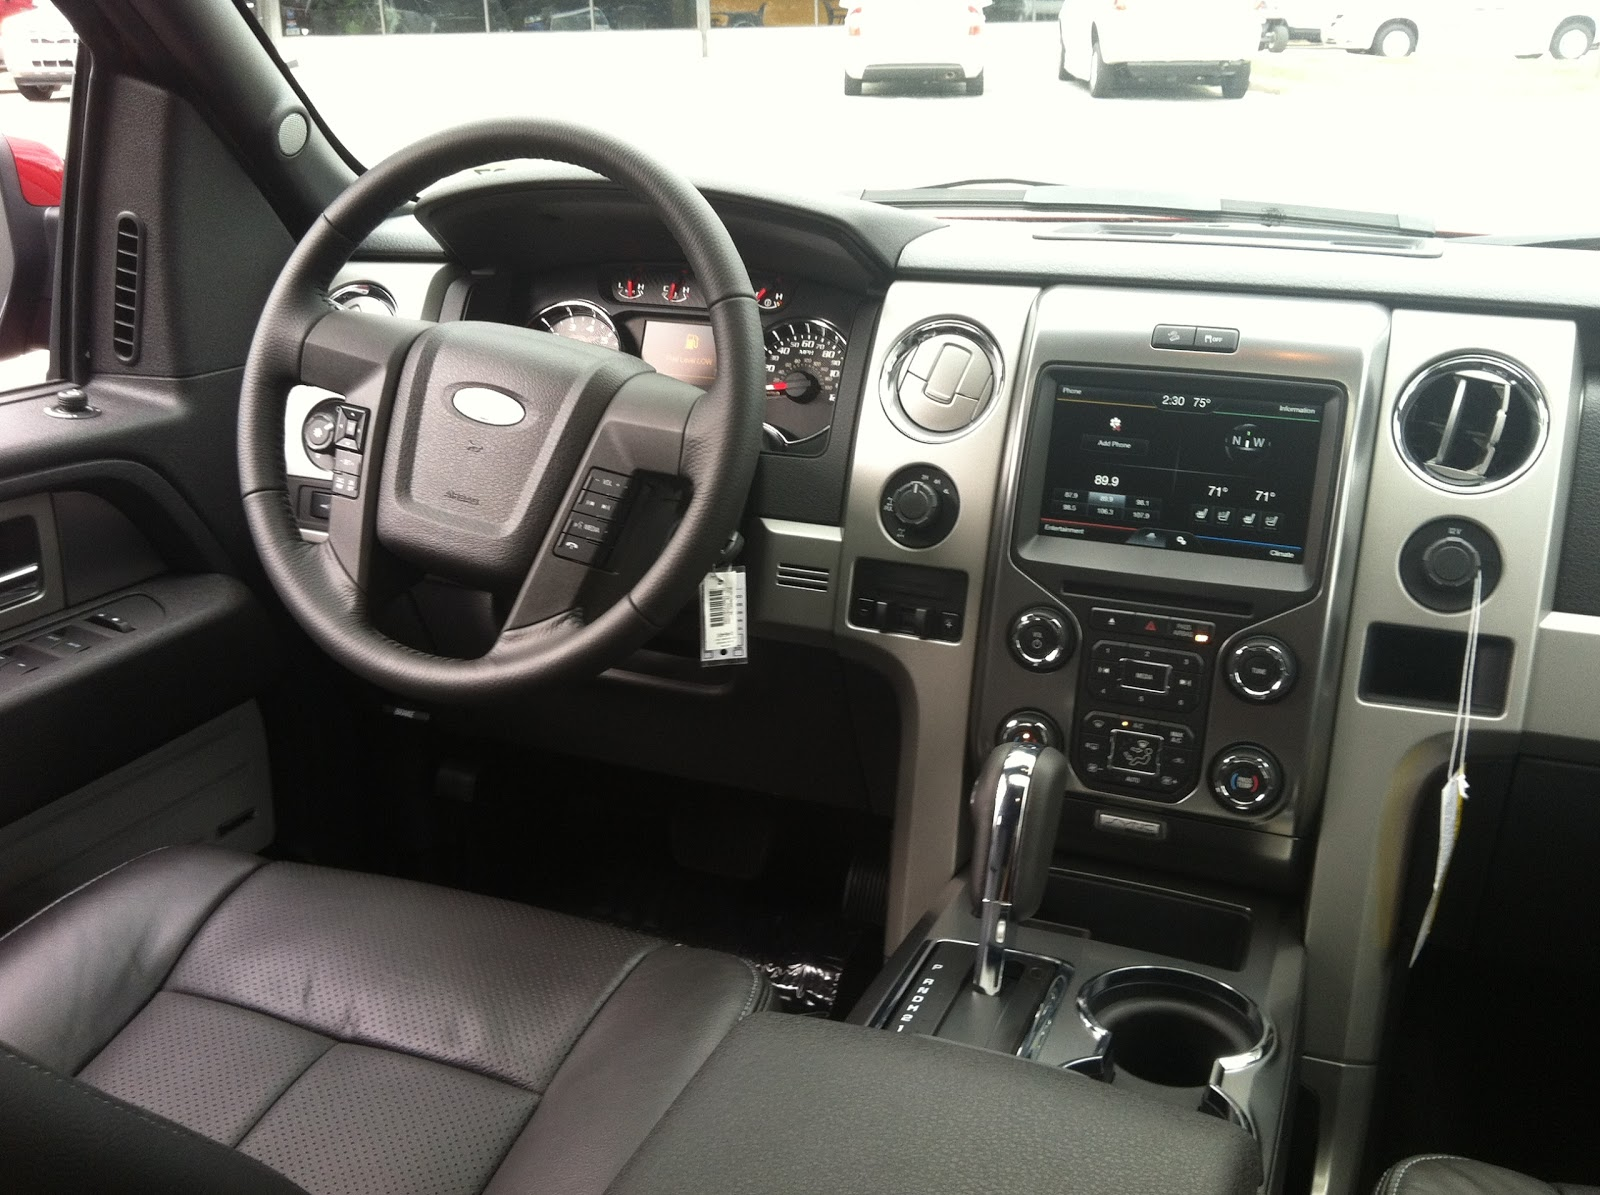 Koons Ford Annapolis >> 2012 F-150 Super Crew FX4 Long Bed - Page 14 - Ford F150 Forum - Community of Ford Truck Fans